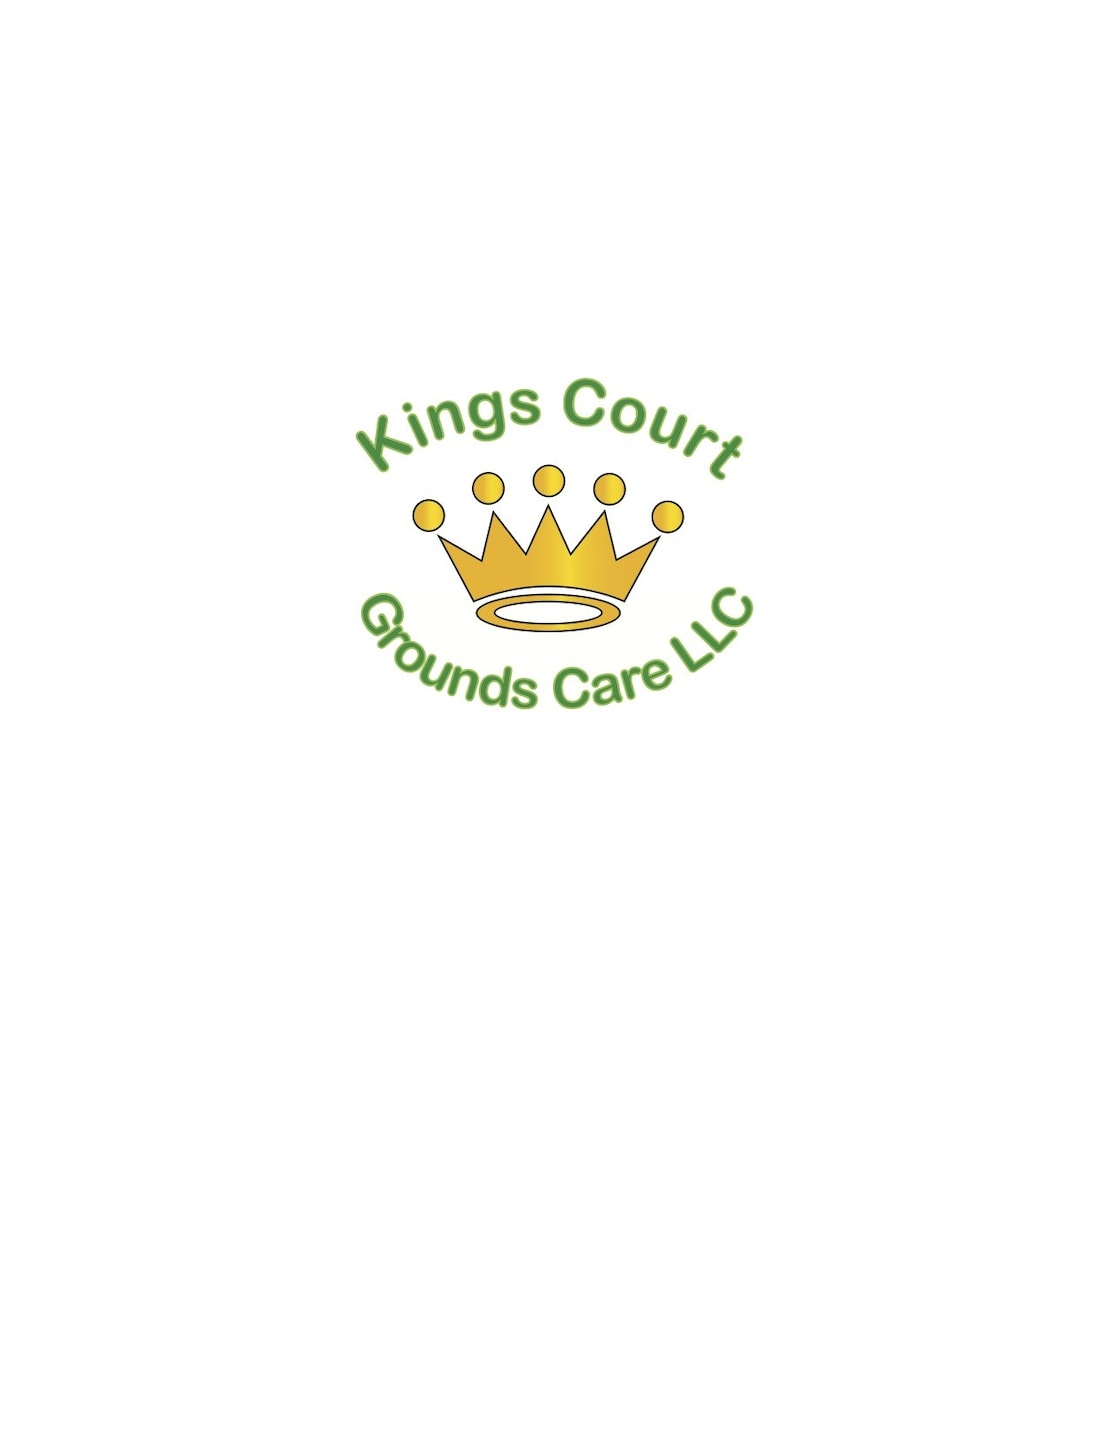 King's Court Grounds Care LLC